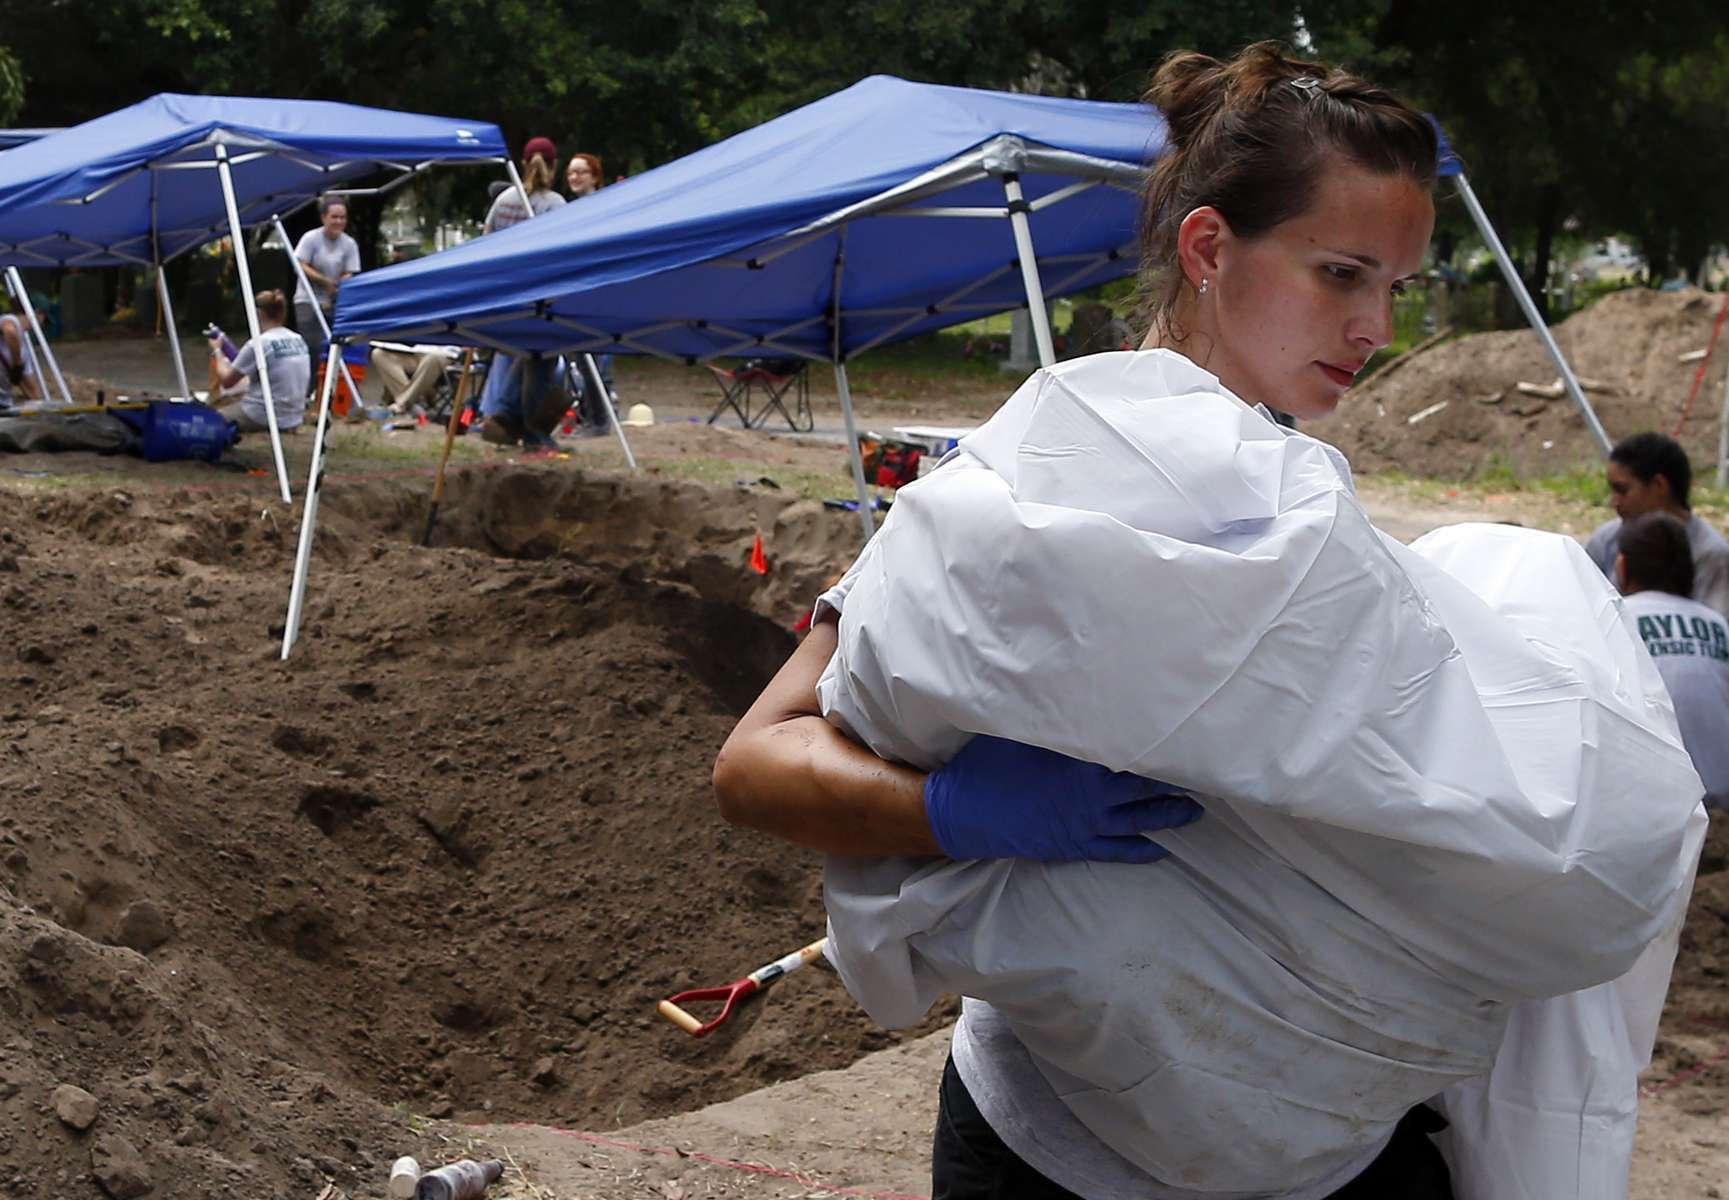 Falfurrias, Texas - Ashley Roy, 30, who works as a crime scene tech for the Waco Police Department in Waco, Texas carries a body of an unidentified migrant who apparently died crossing the border and ended up buried anonymously in a pauper's grave after helping members of the Baylor forensics team to exhume it in Falfurrias, Texas June 10, 2014.